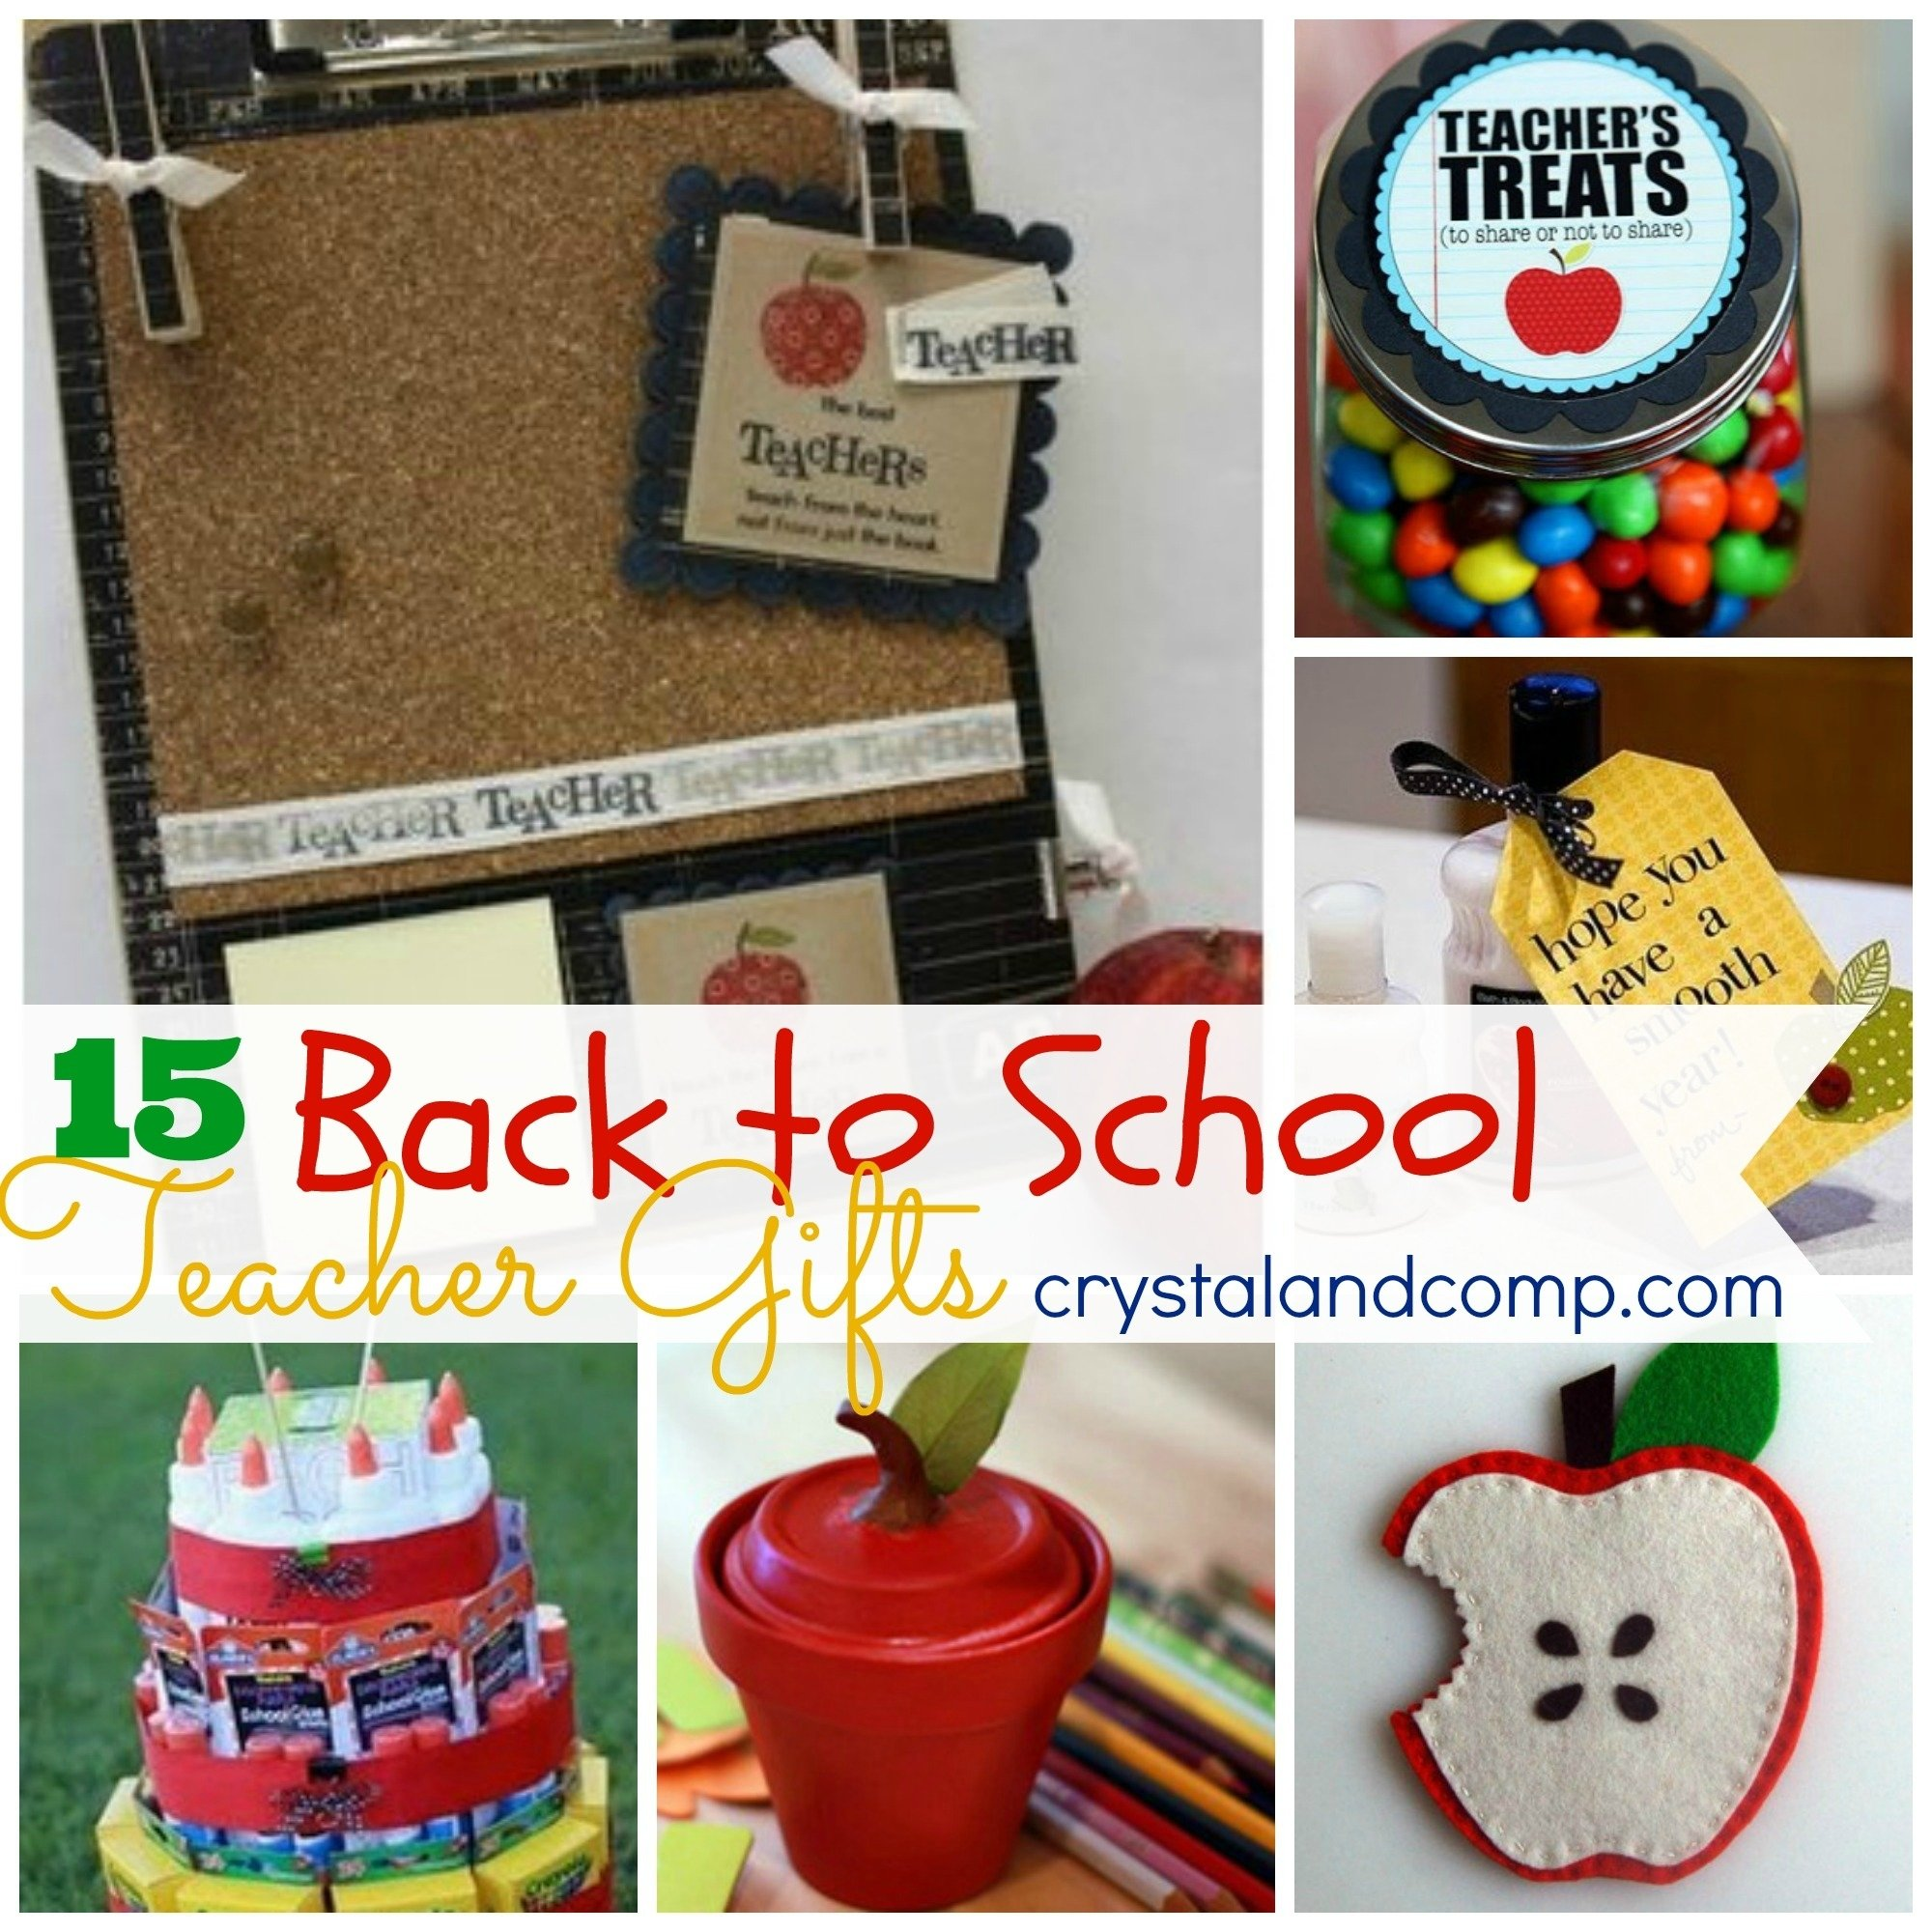 10 Unique Back To School Gift Ideas back to school tips teacher gift ideas 6 2021